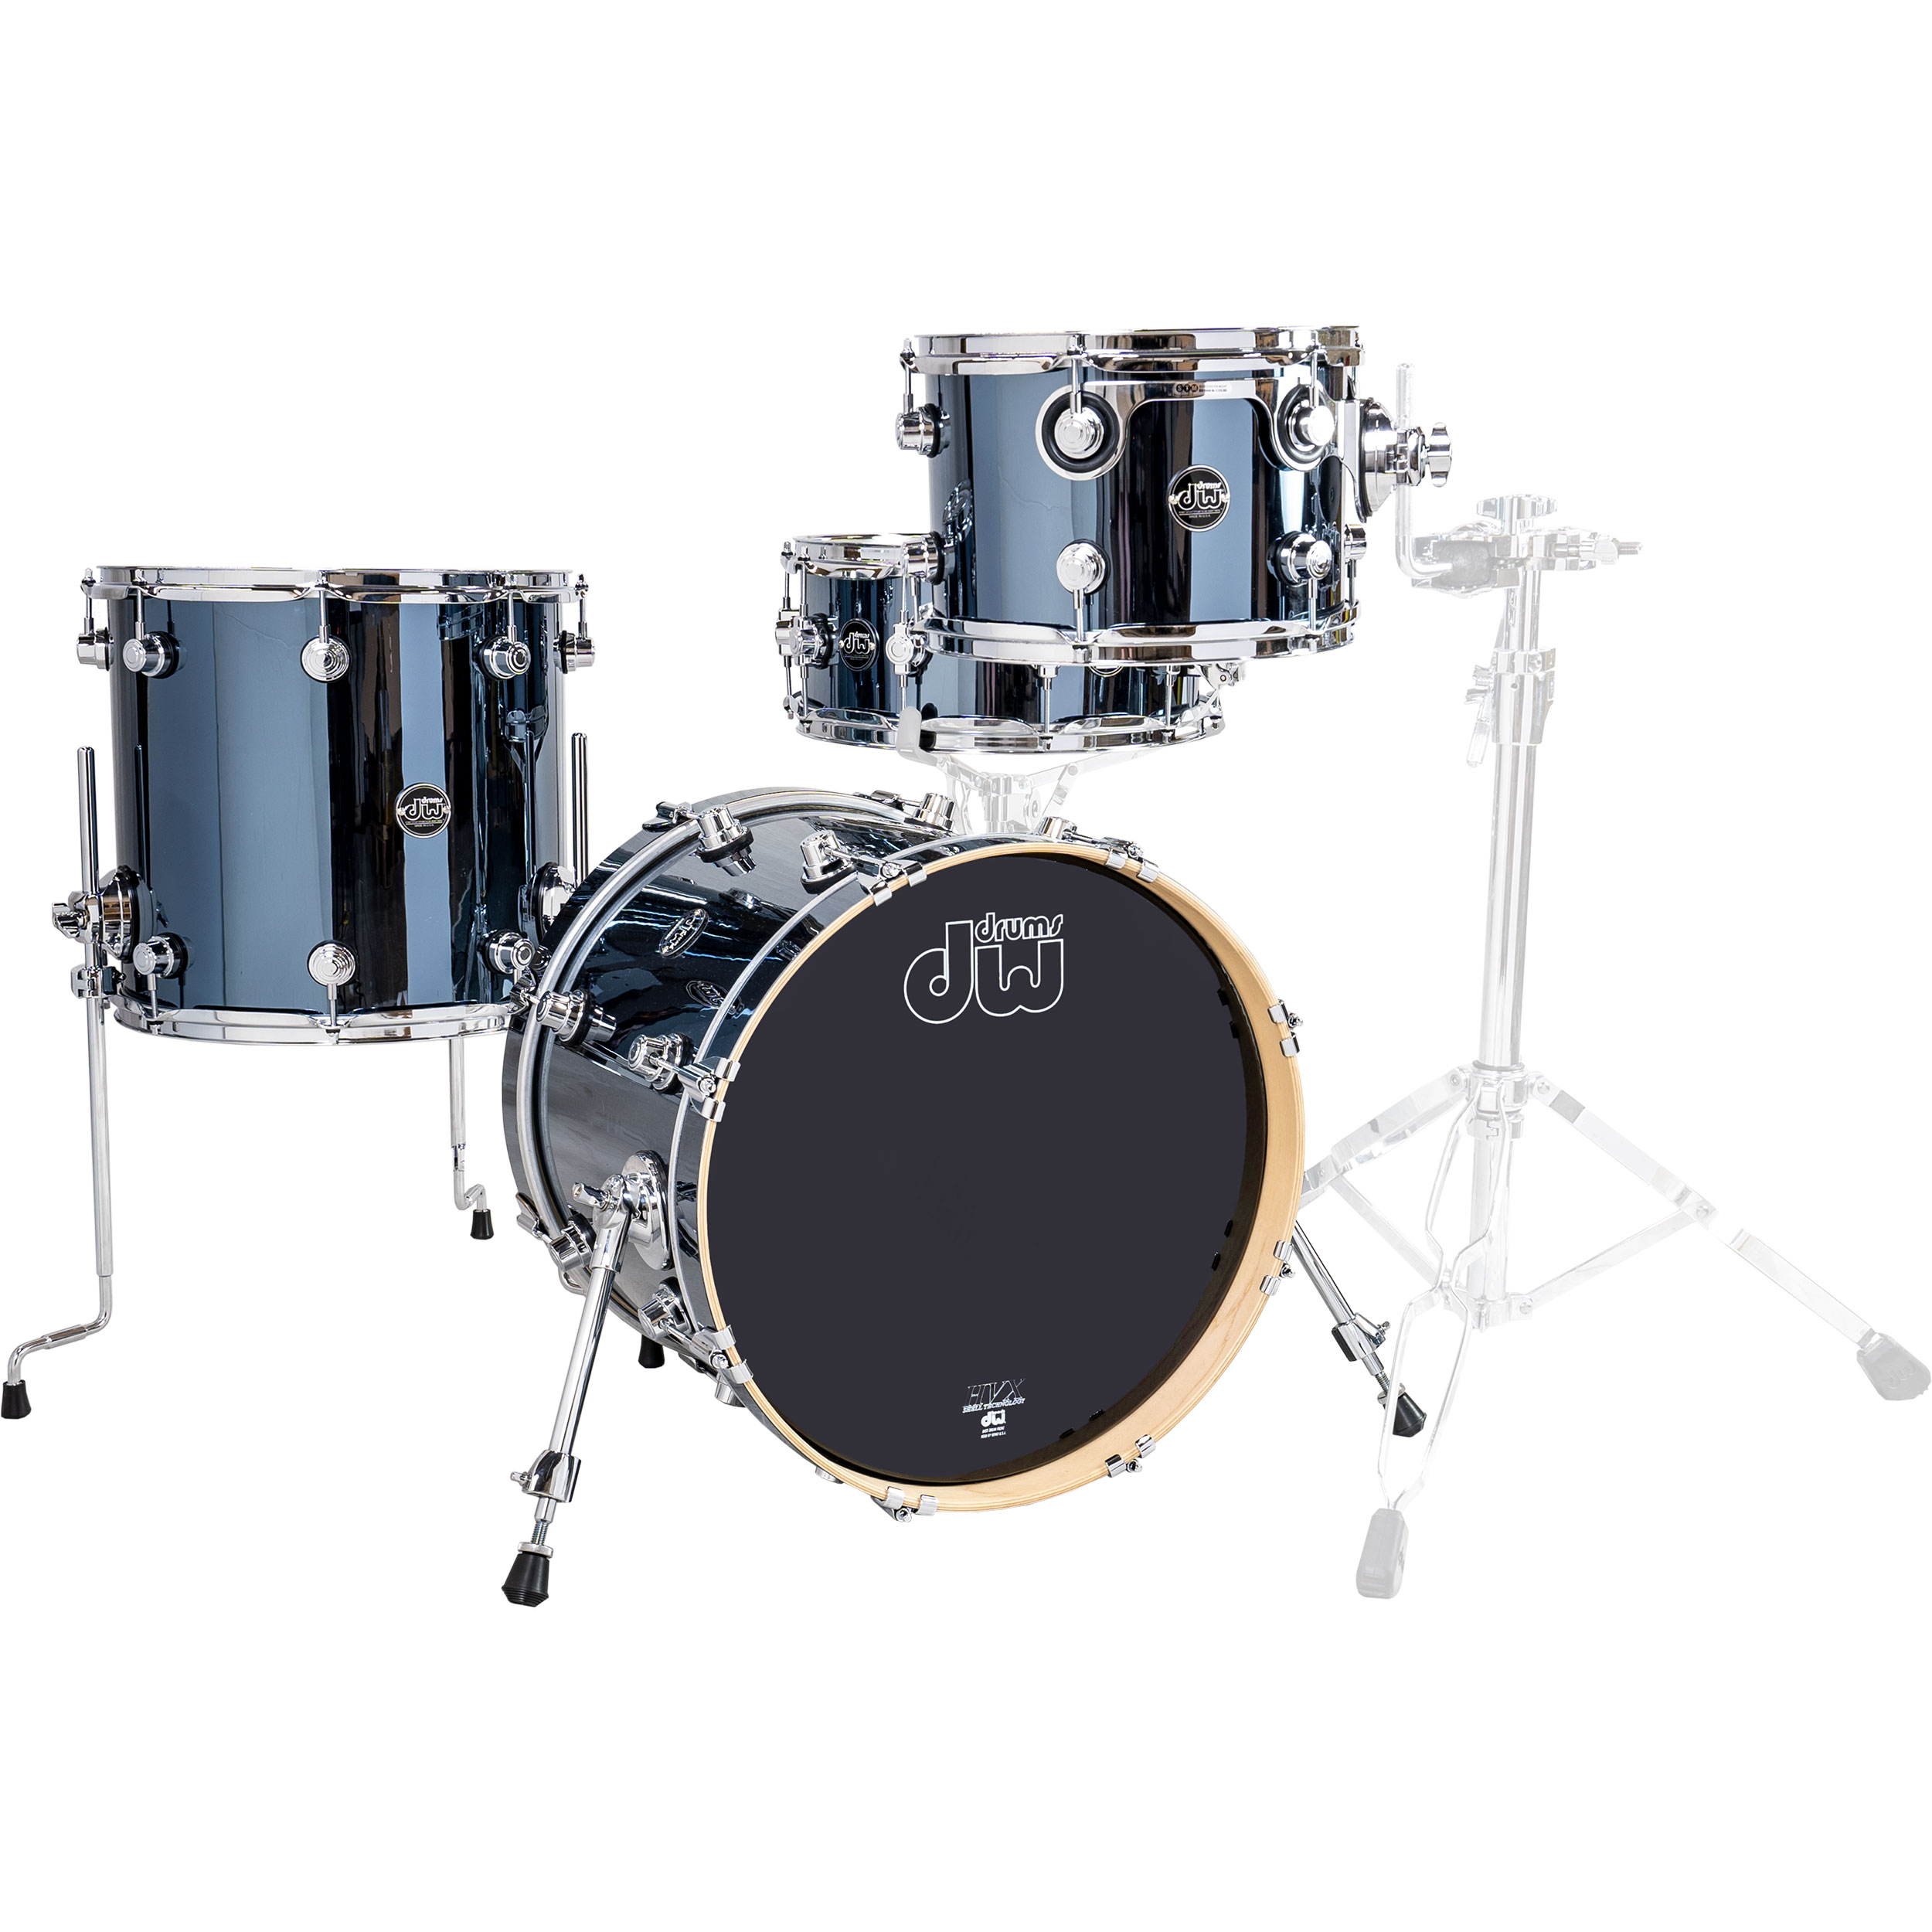 "DW Performance Series 4-Piece Drum Set Shell Pack (18"" Bass, 12/14"" Toms, 14"" Snare) in Chrome Shadow"